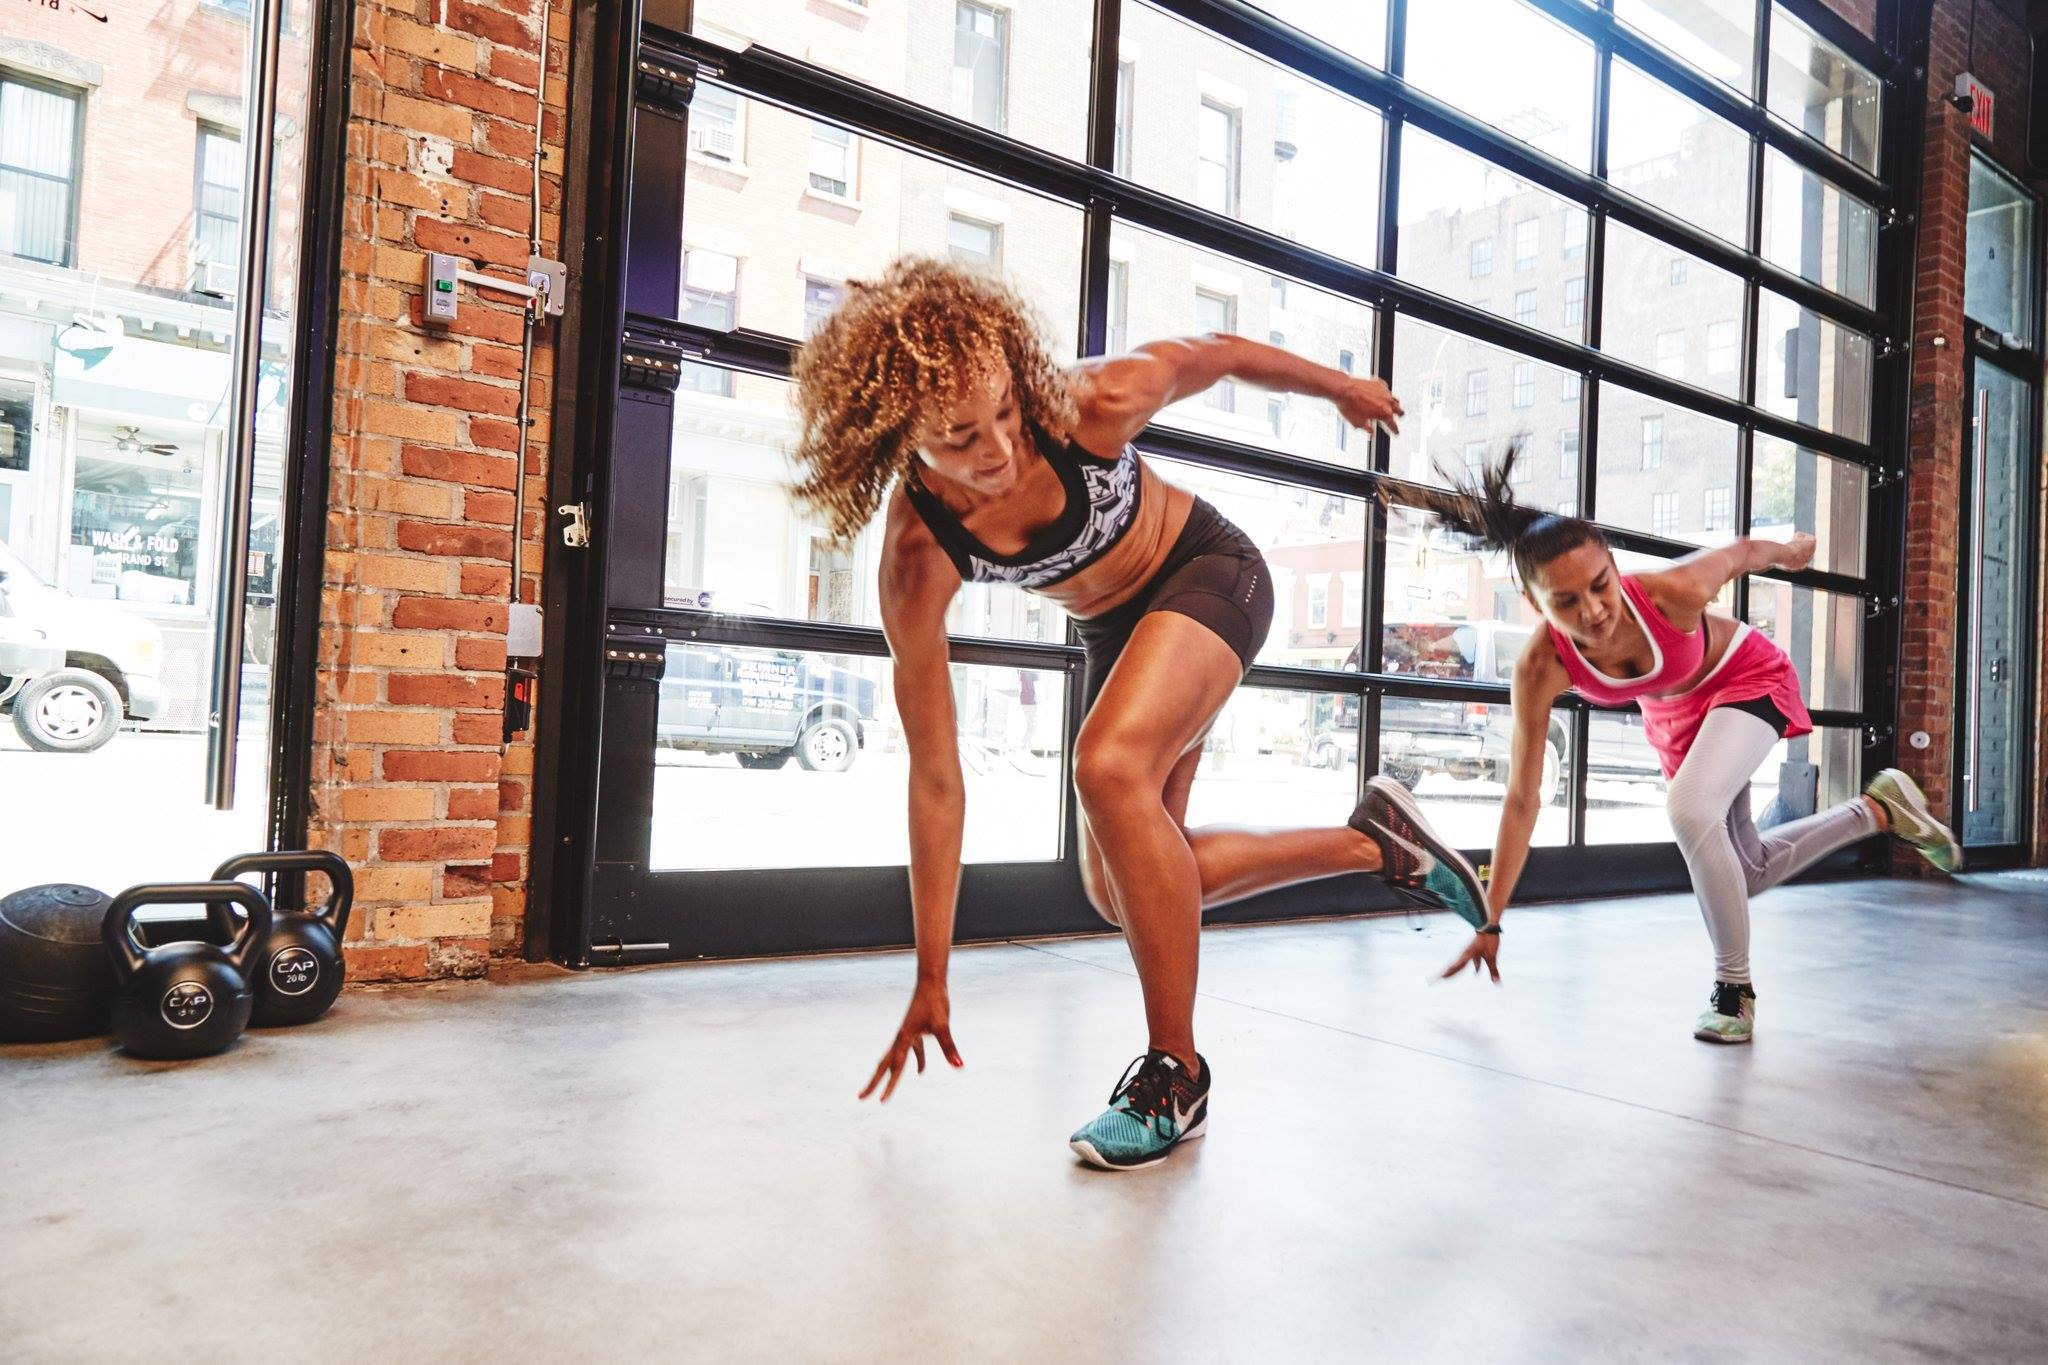 Work out to these fun fitness videos at home – no equipment needed